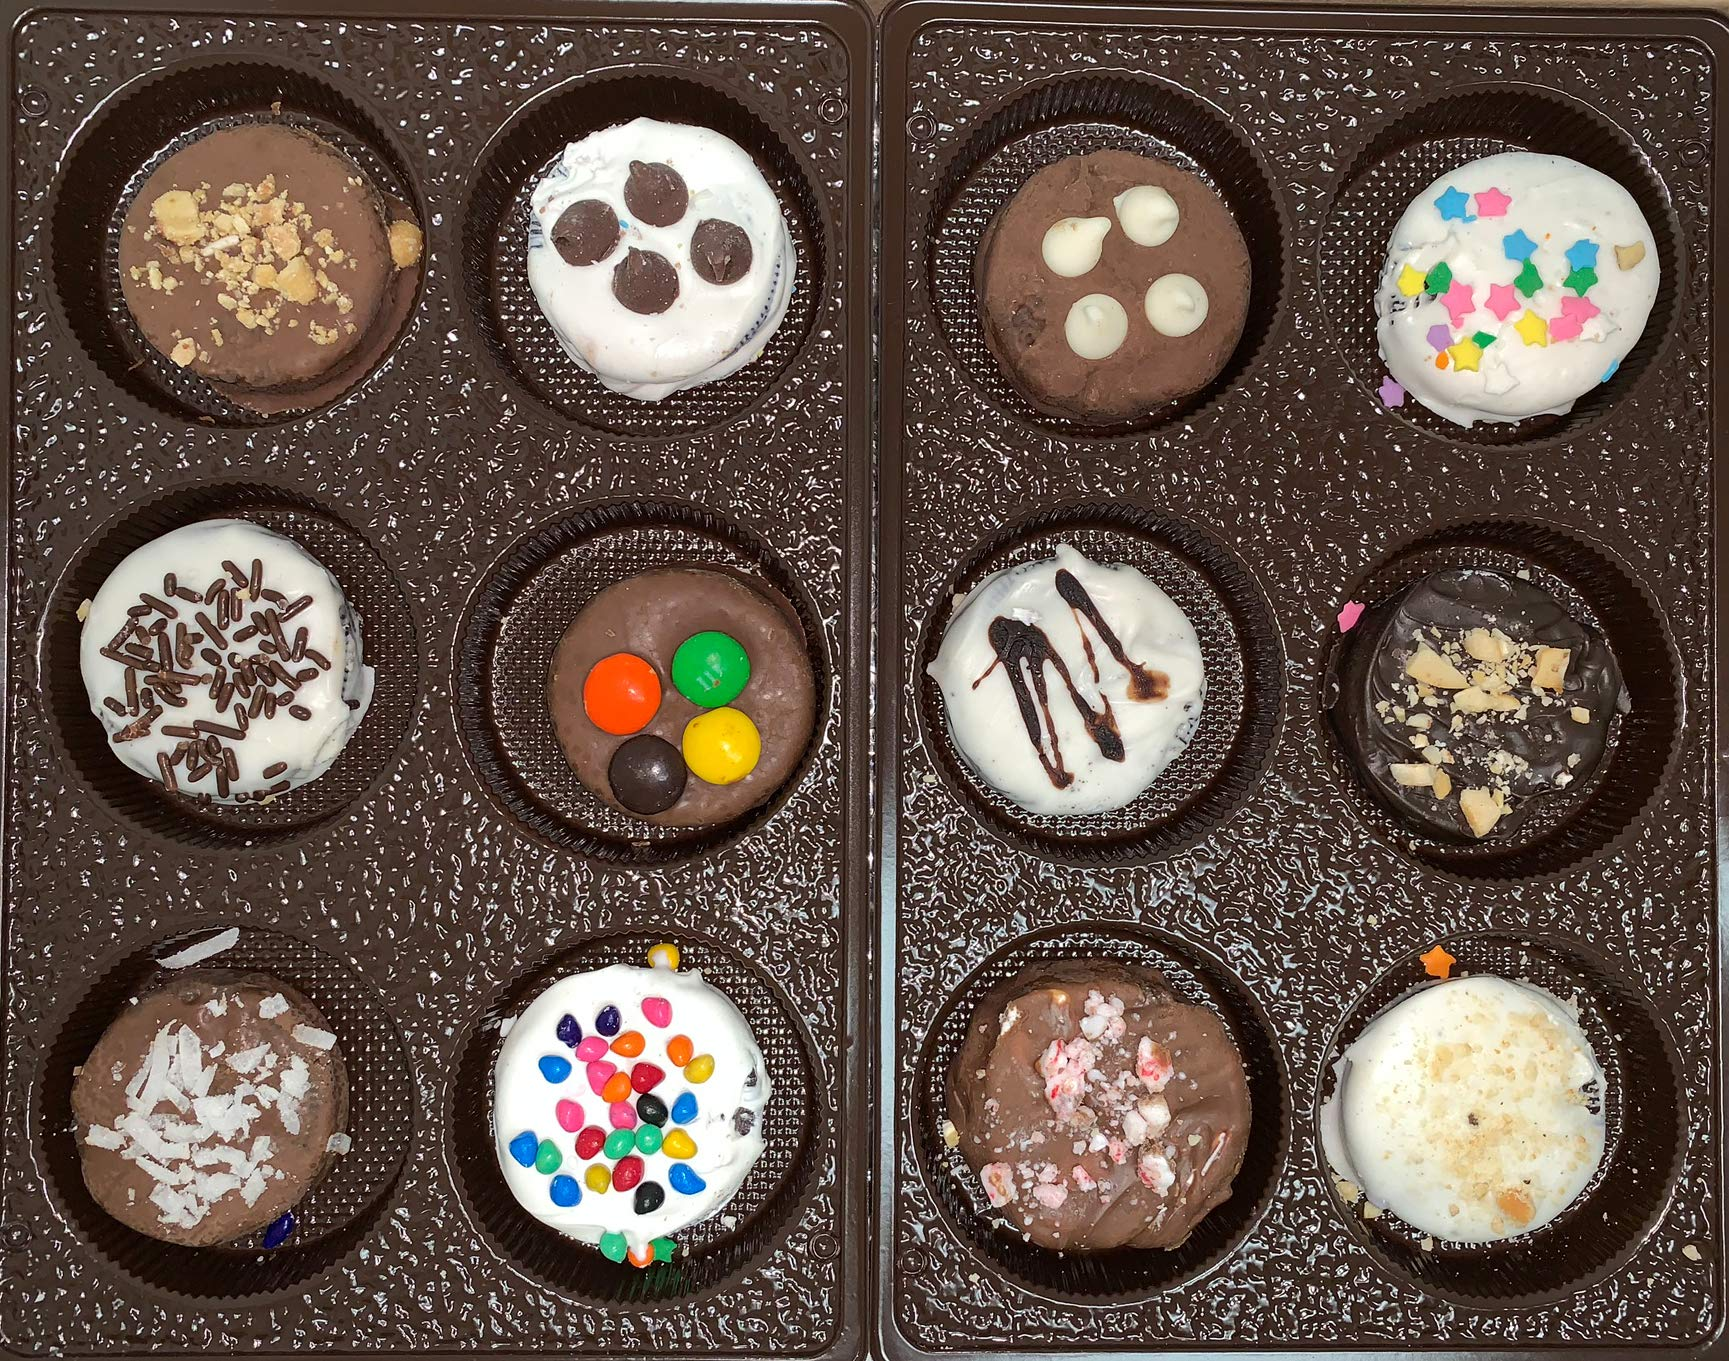 Chocolate Covered Cookies Gift Box. Gourmet Sandwich Cookies. Perfect Gift for the Holidays. 12 Tasty Decorated Cookies. Beautifully Gift Box, Great Gift for Men, Women, Children. Guarantee Fresh. by Coco's Gift Baskets